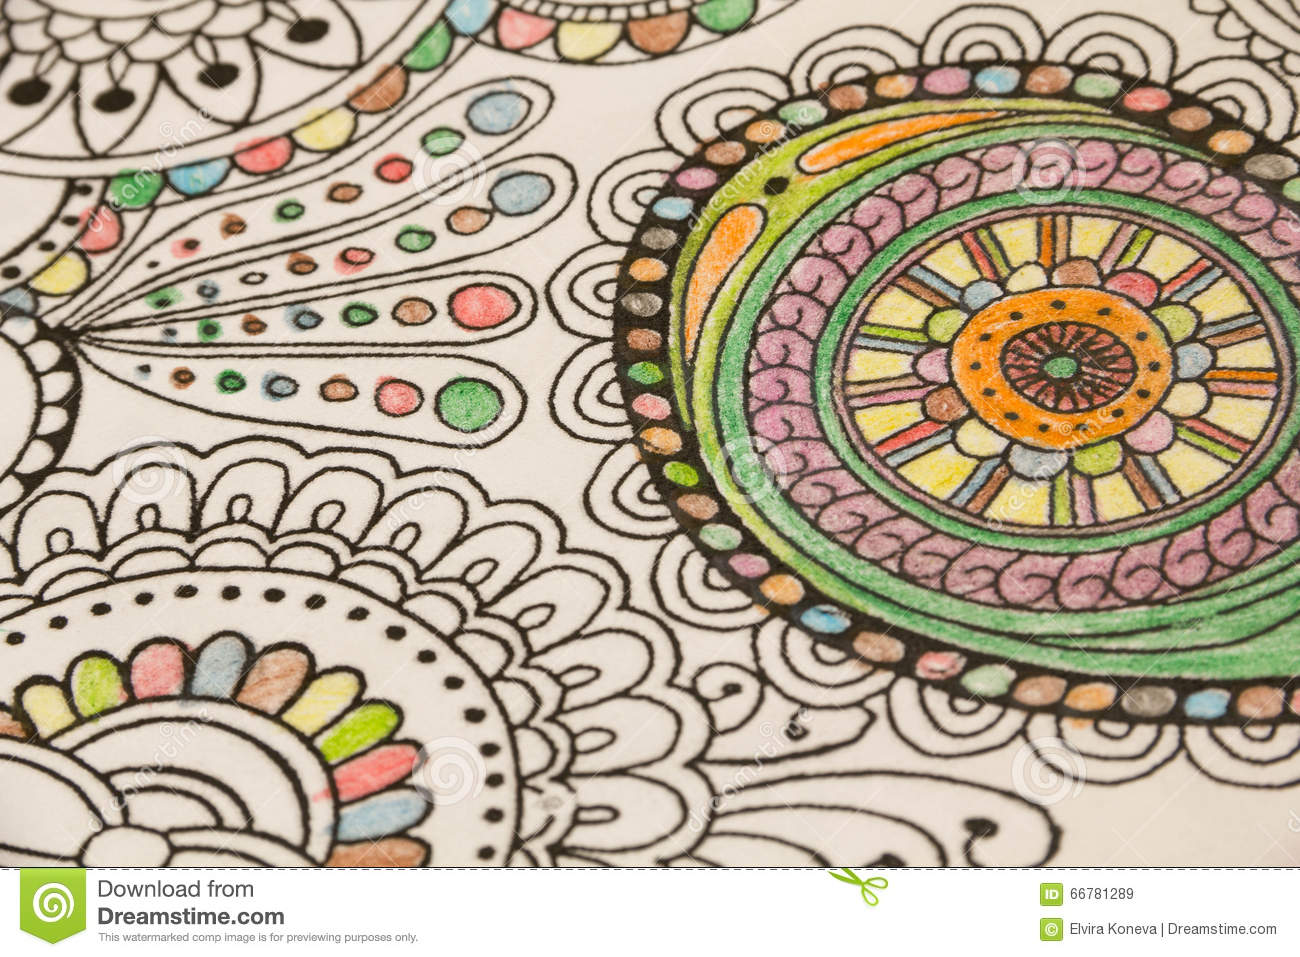 Download Adult Colouring Books With Pencils New Stress Relieving Trend Mindfulness Concept Person Coloring